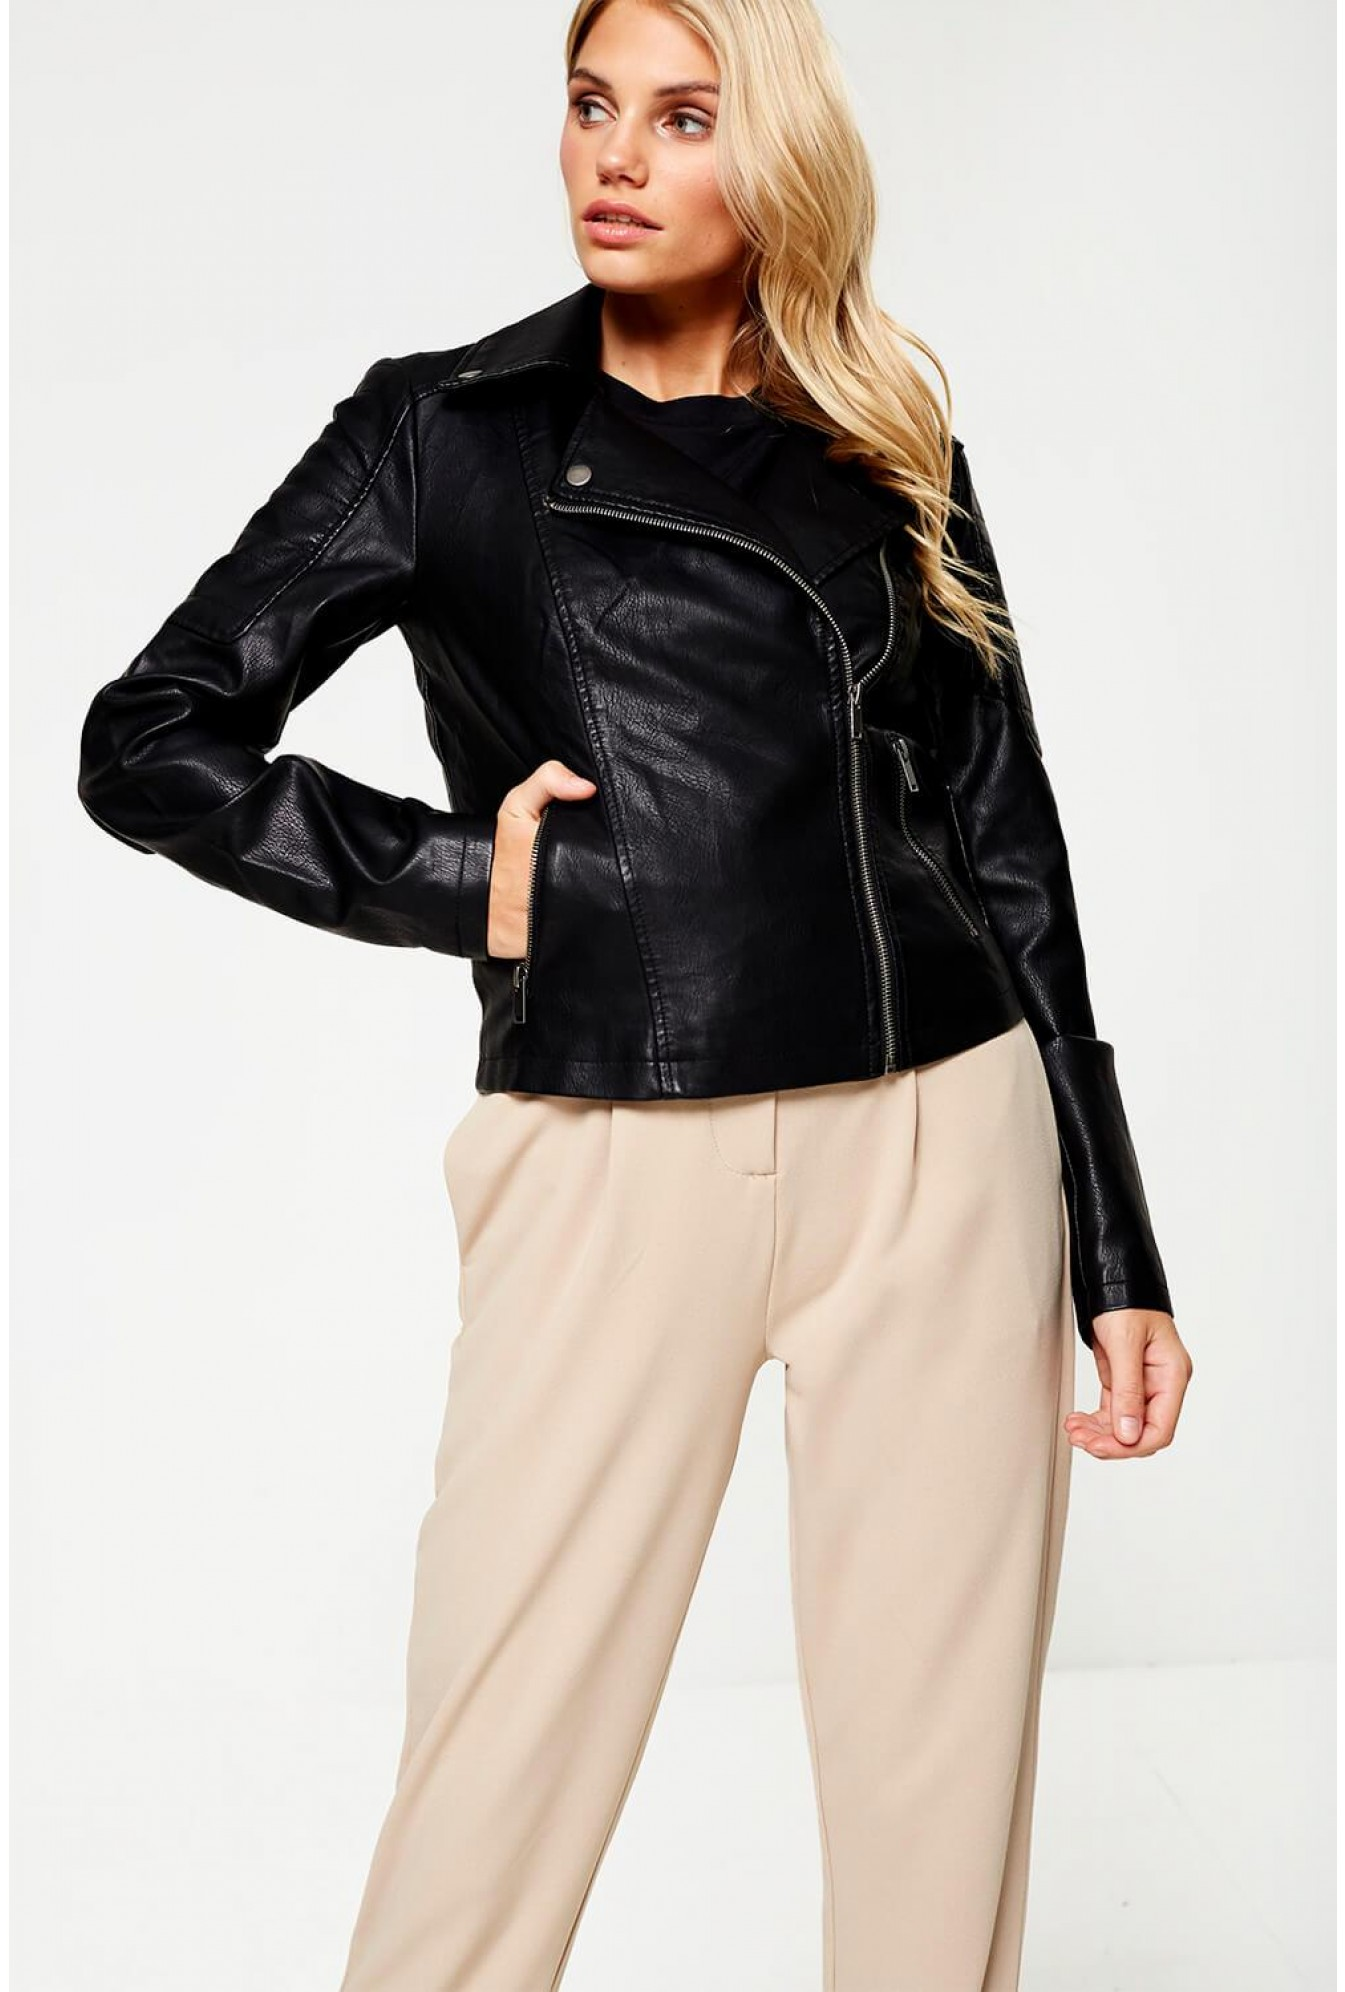 af05f51fc585 Noisy May Rebel Long Sleeve Faux Leather Jacket in Black